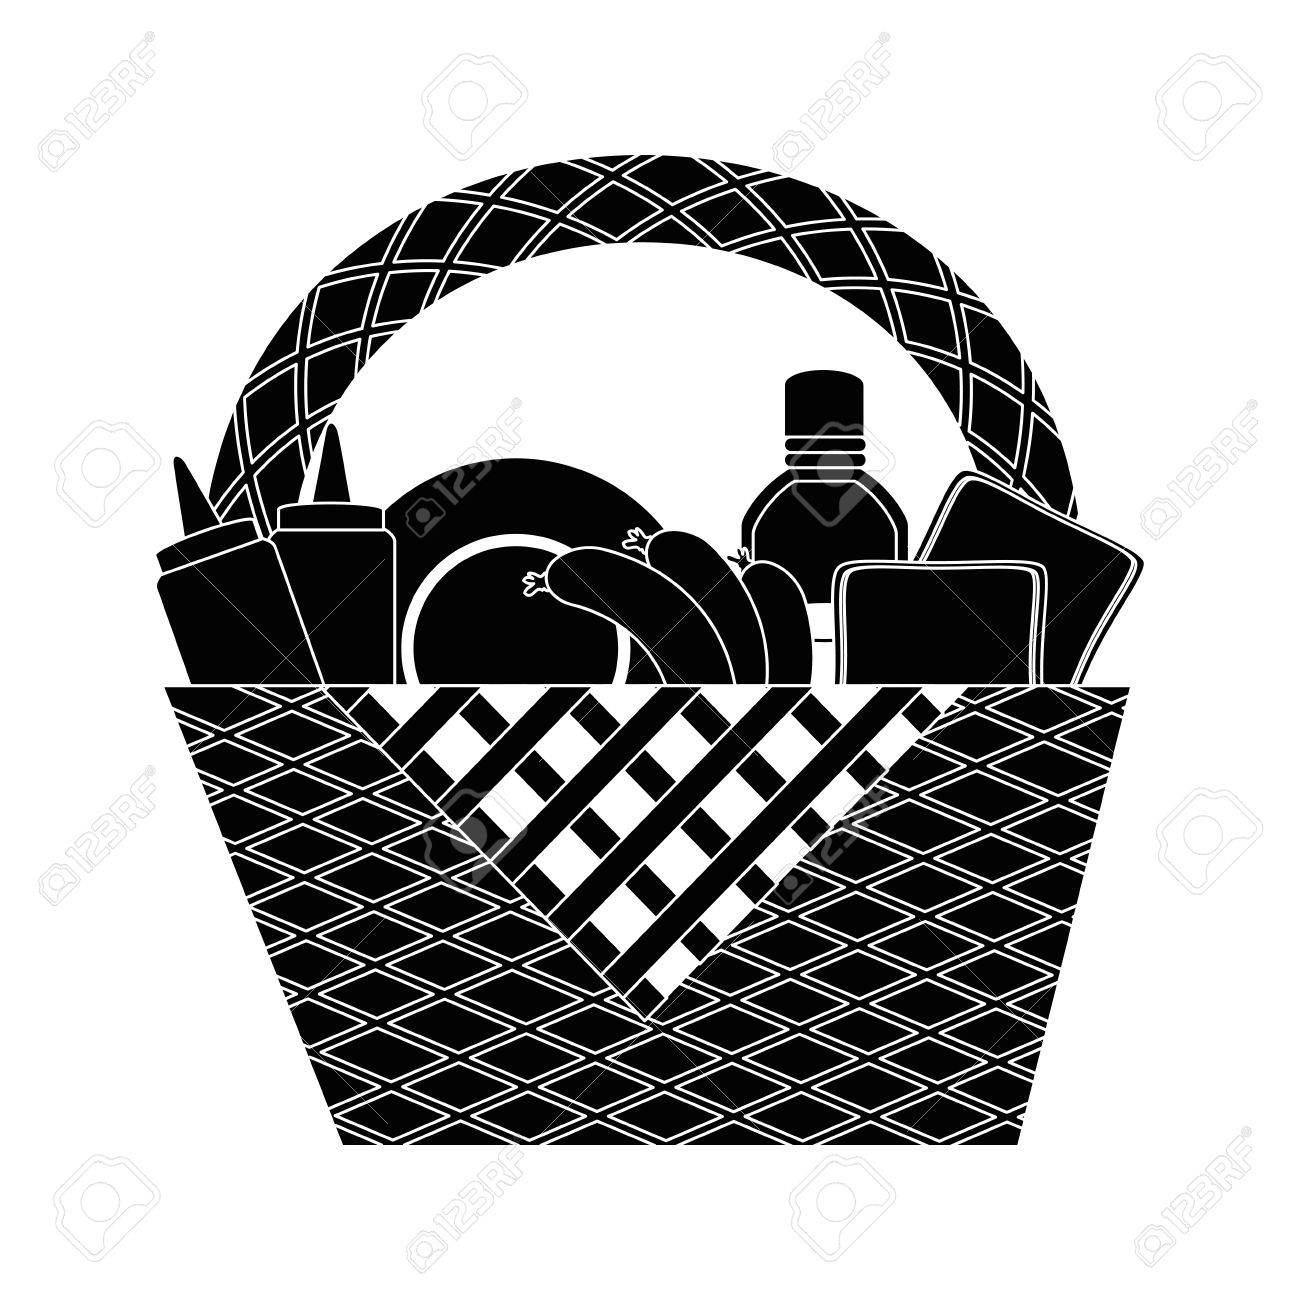 Picnic Basket Cartoon Icon Vector Illustration Graphic Design Royalty Free Cliparts Vectors And Stock Illustration Image 81622950